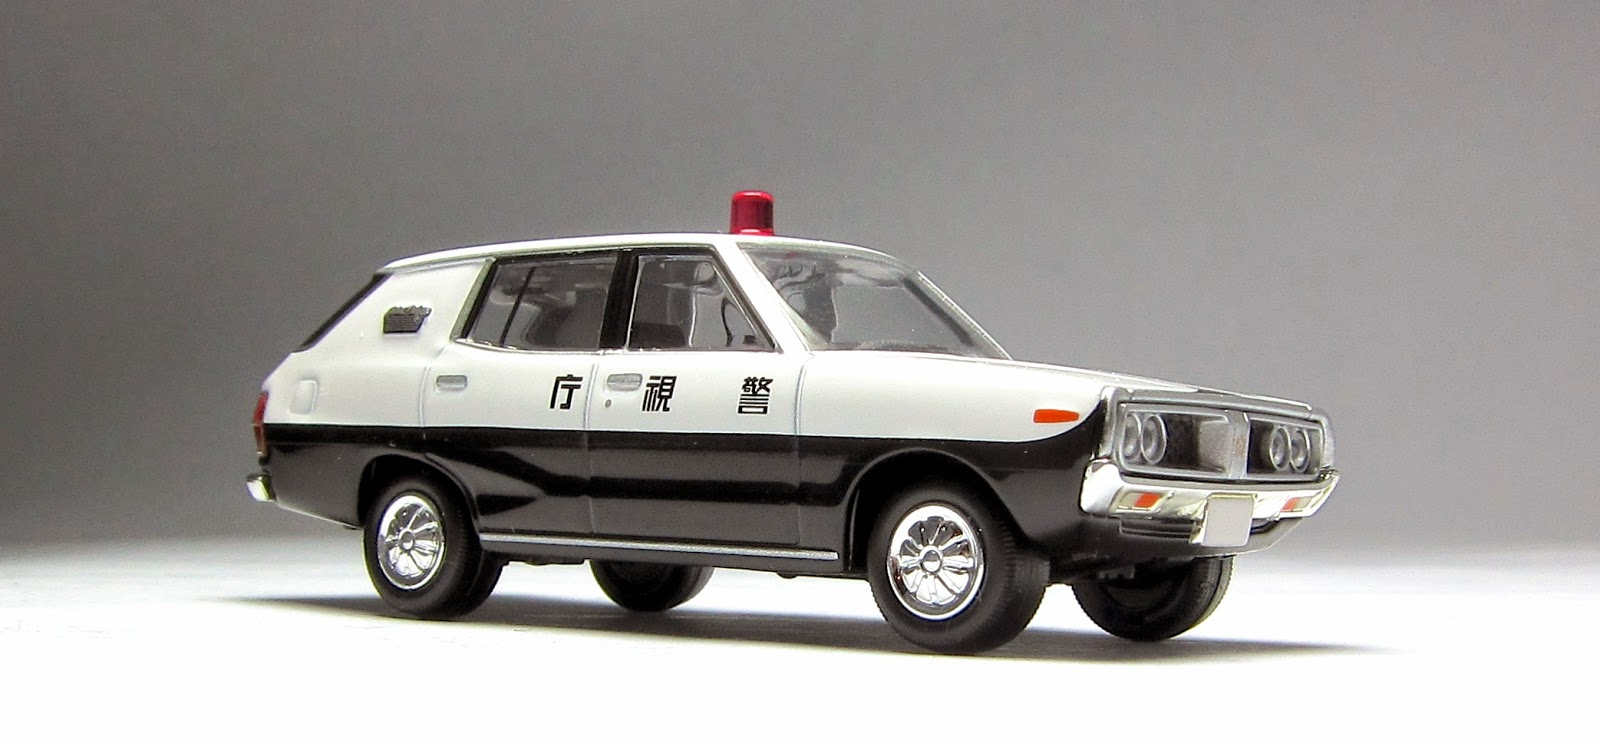 TOYOTA LAND CRUISER FJ56V FUKUOKA POLICE LIMITED EDITION